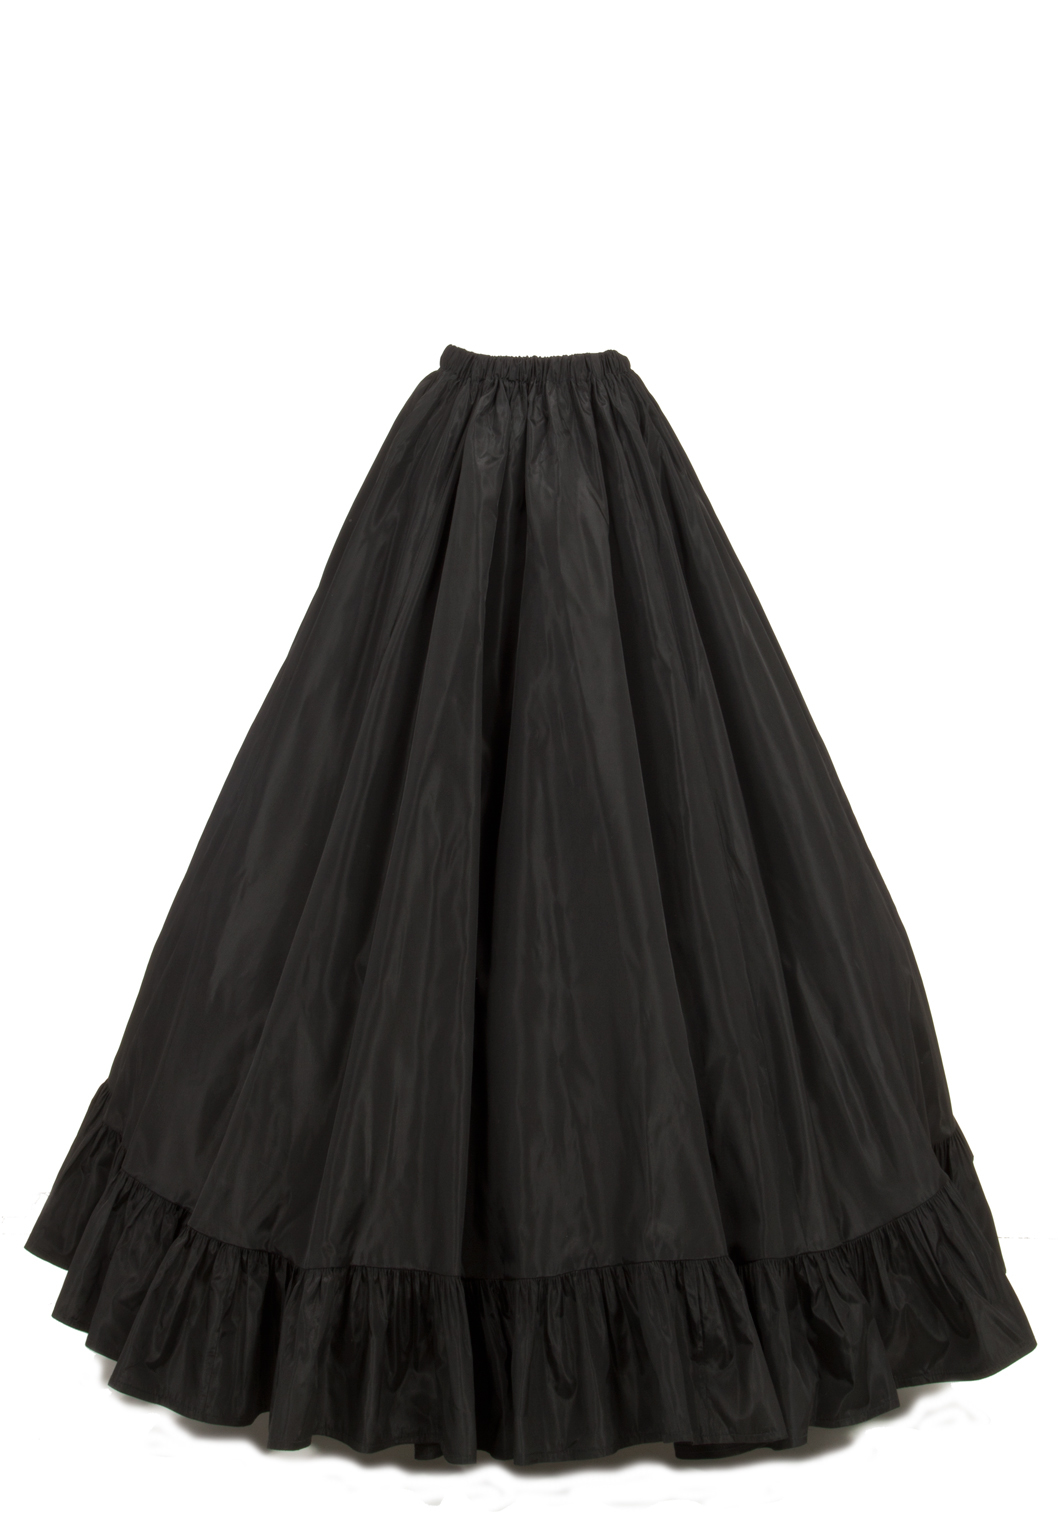 Civil War Taffeta Petticoat